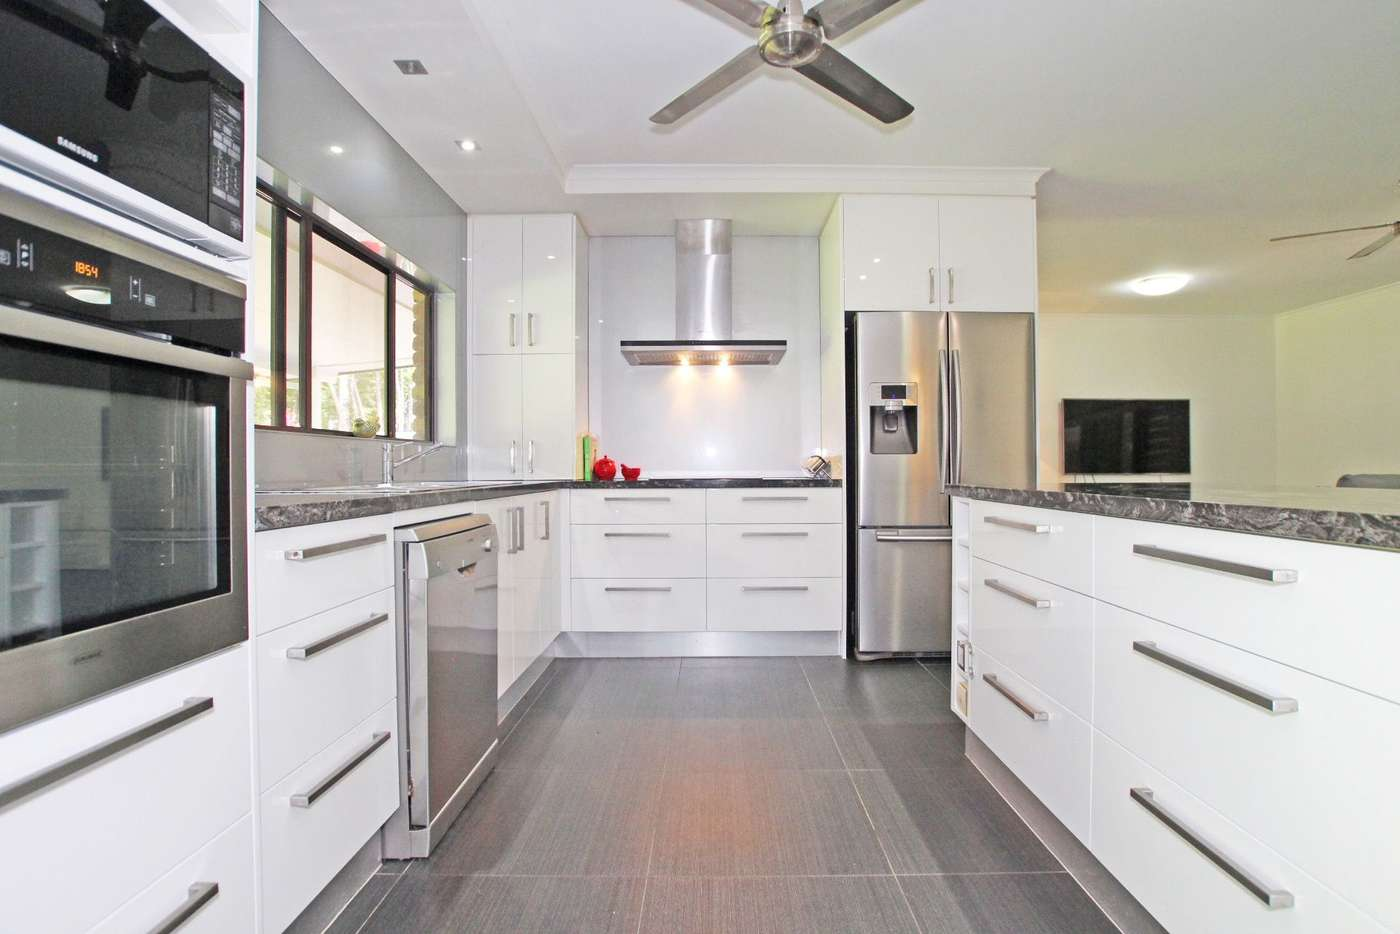 Main view of Homely house listing, 52 Hobson Drive, Brinsmead QLD 4870